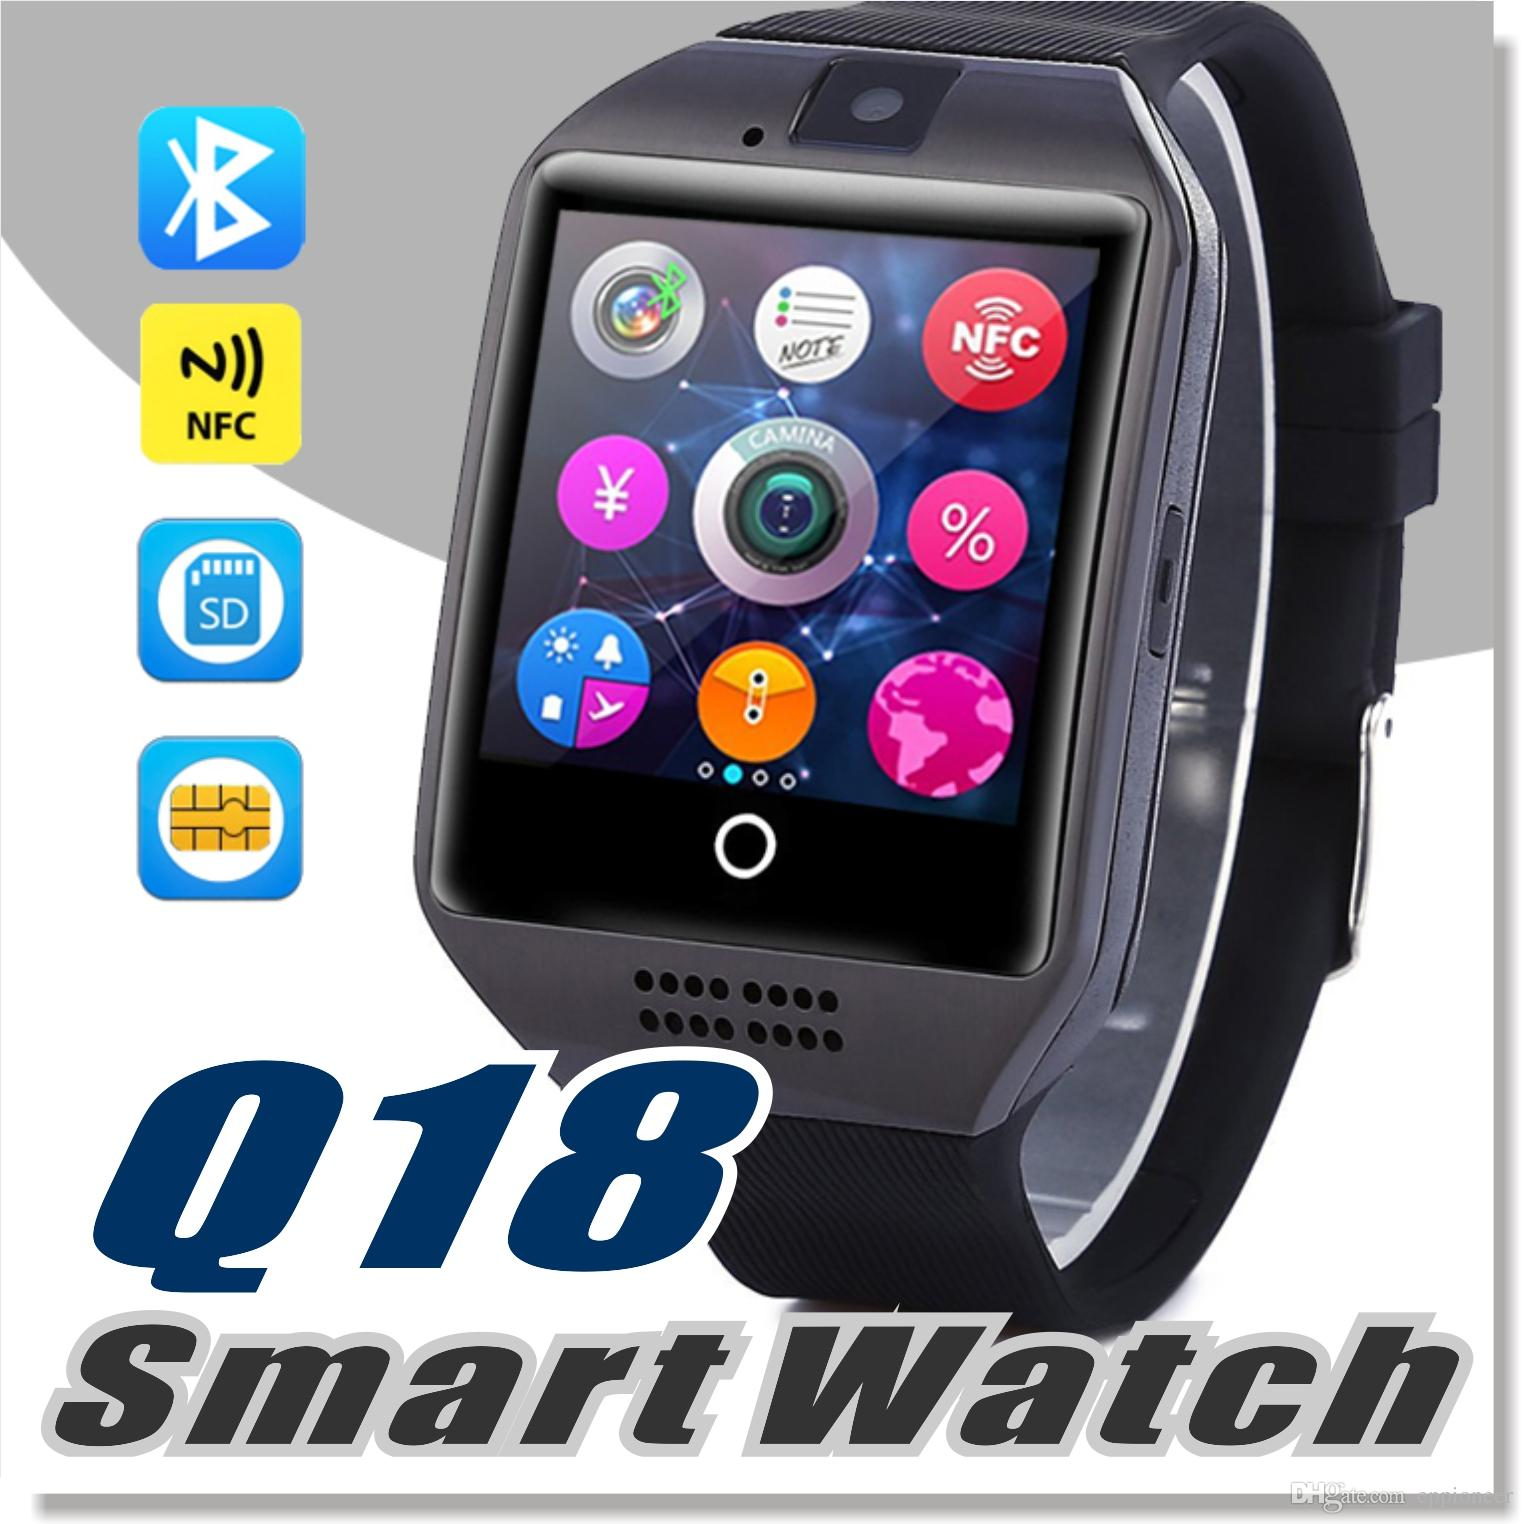 watch amazon nokia system smart for iphone windows screen dp microsoft phone watches stopwatch black pedometer google monitoring bracelet android mobile calculator symbian touch csmarte com